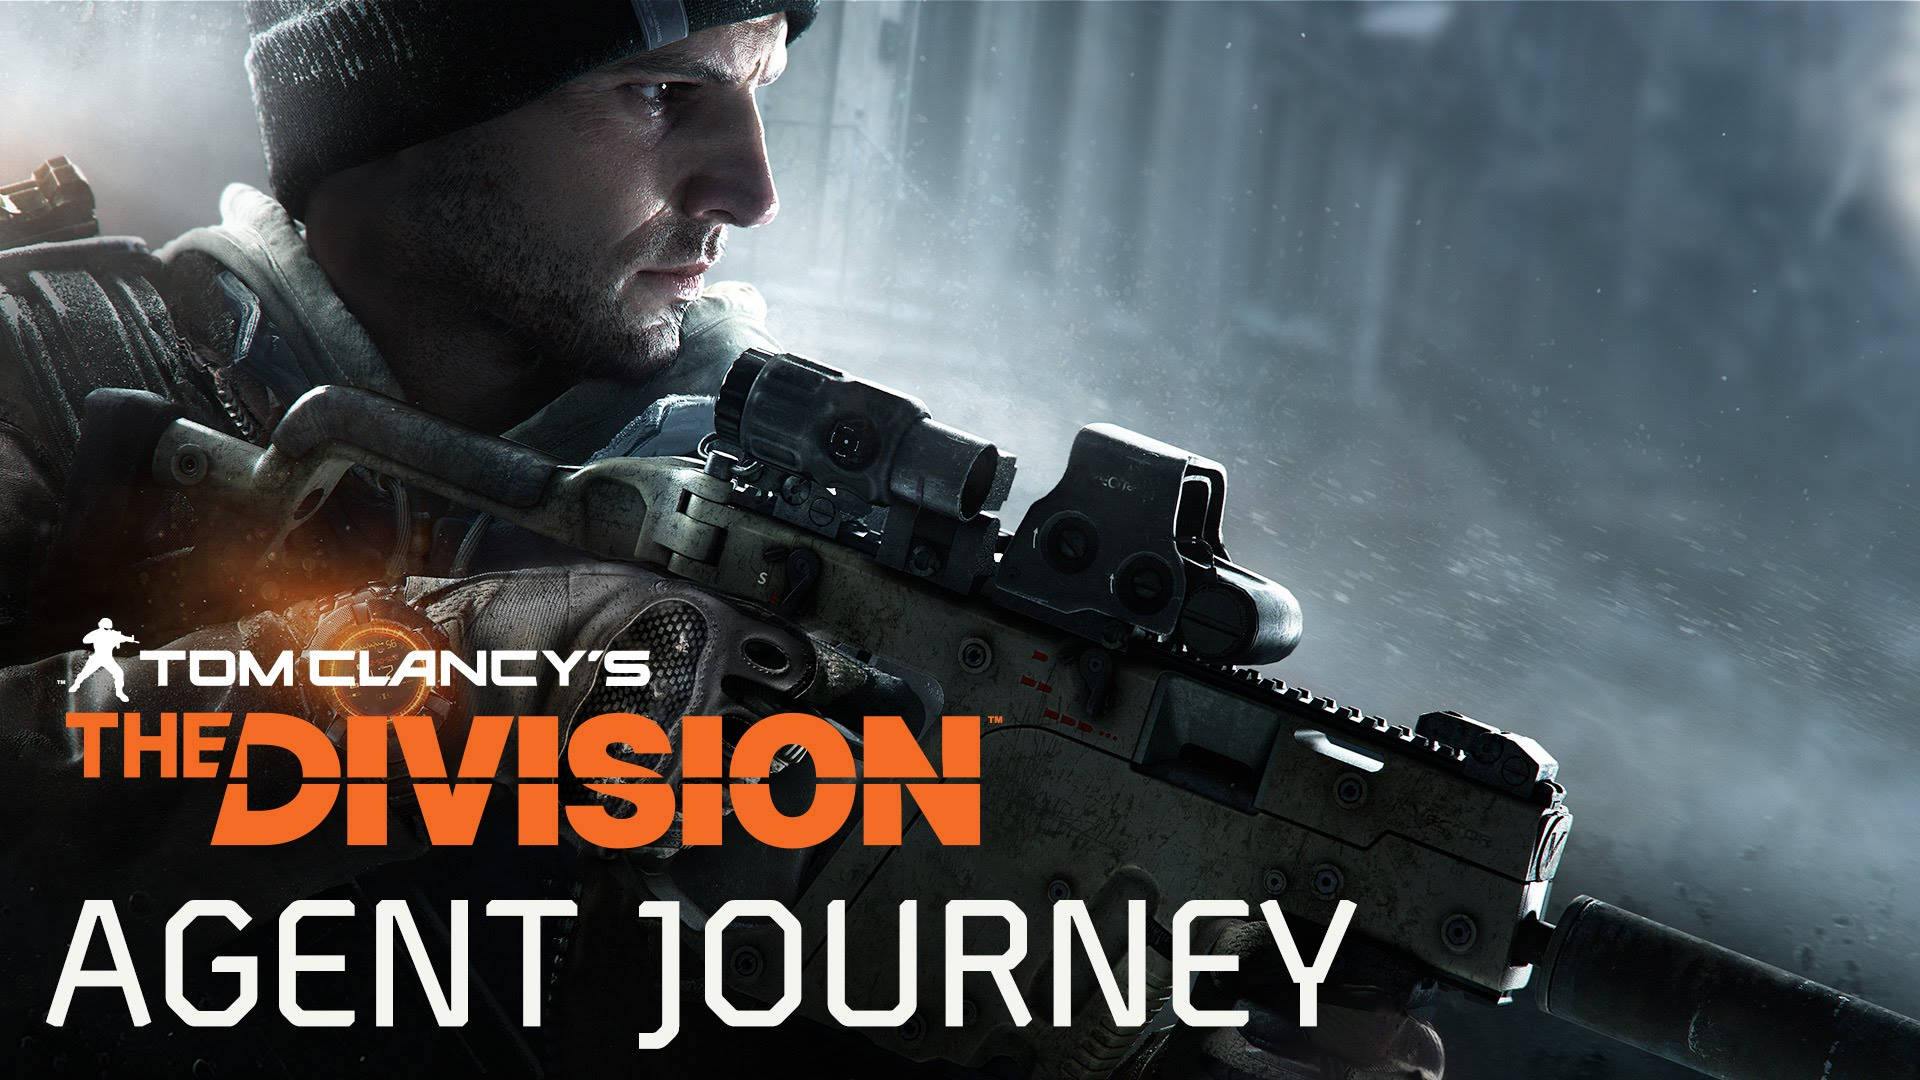 Tom Clancy's The Division - Agent Journey [ANZ] Multiplatform